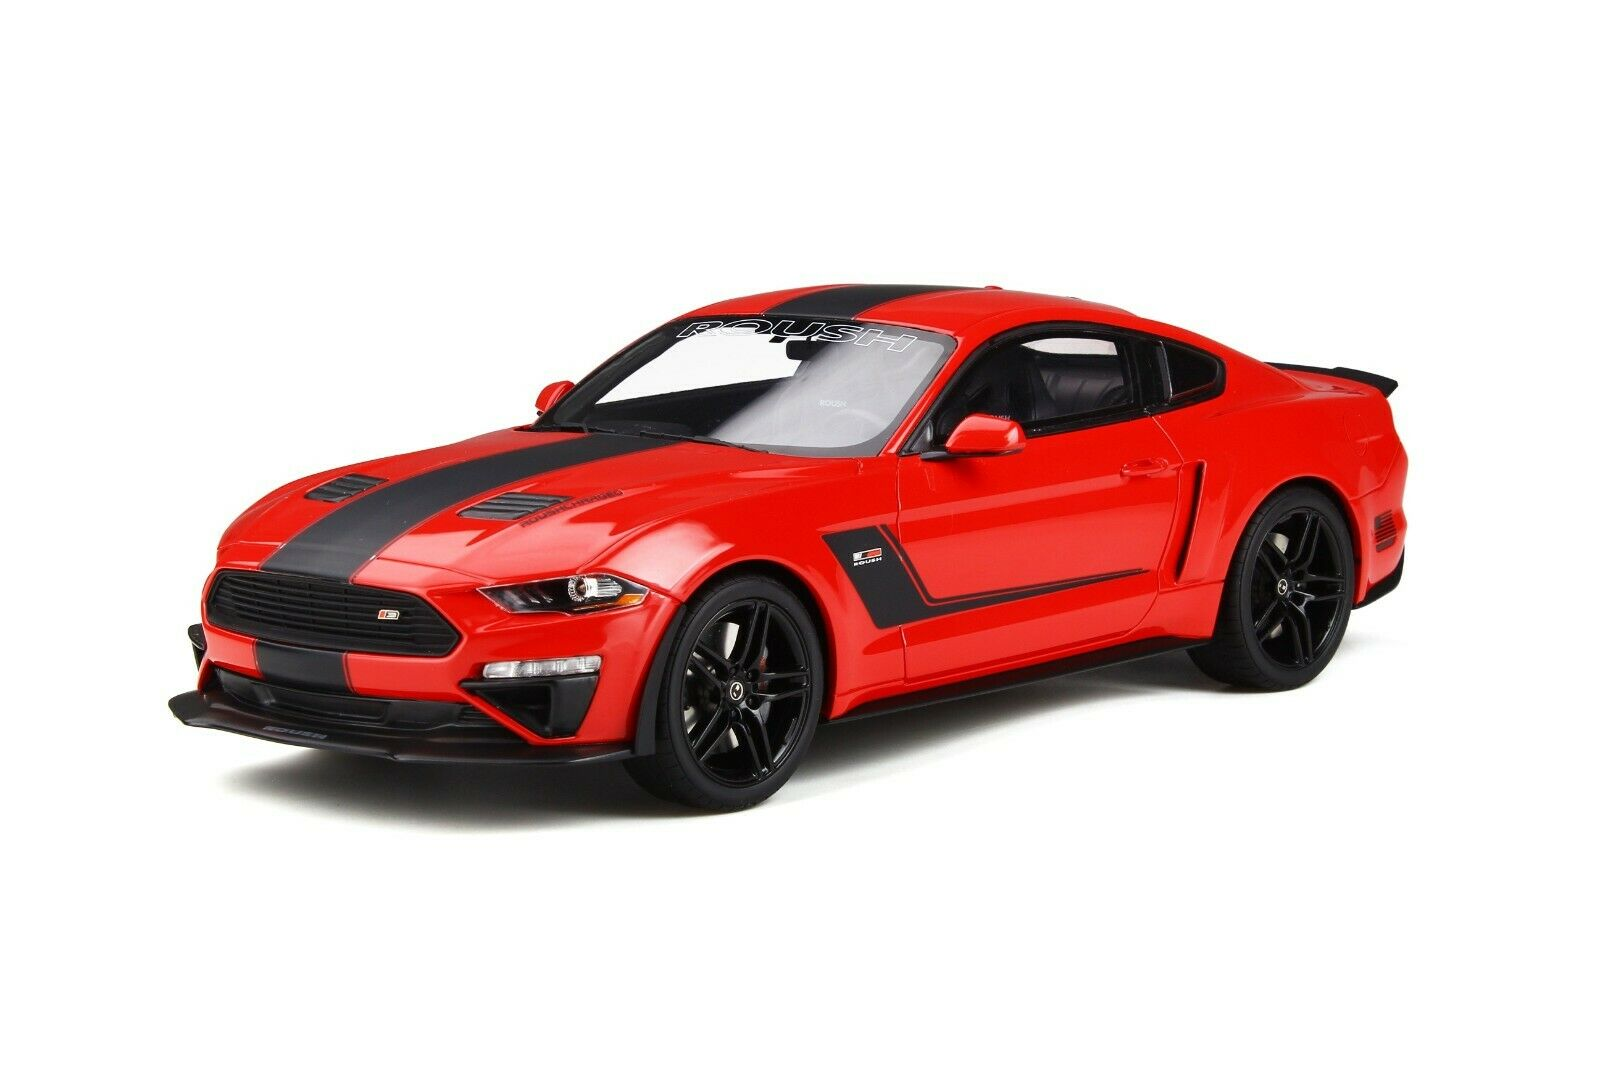 Ford Mustang Trin 3 Superladet ROUSH Performance Tuning Red GT Spirit GT260